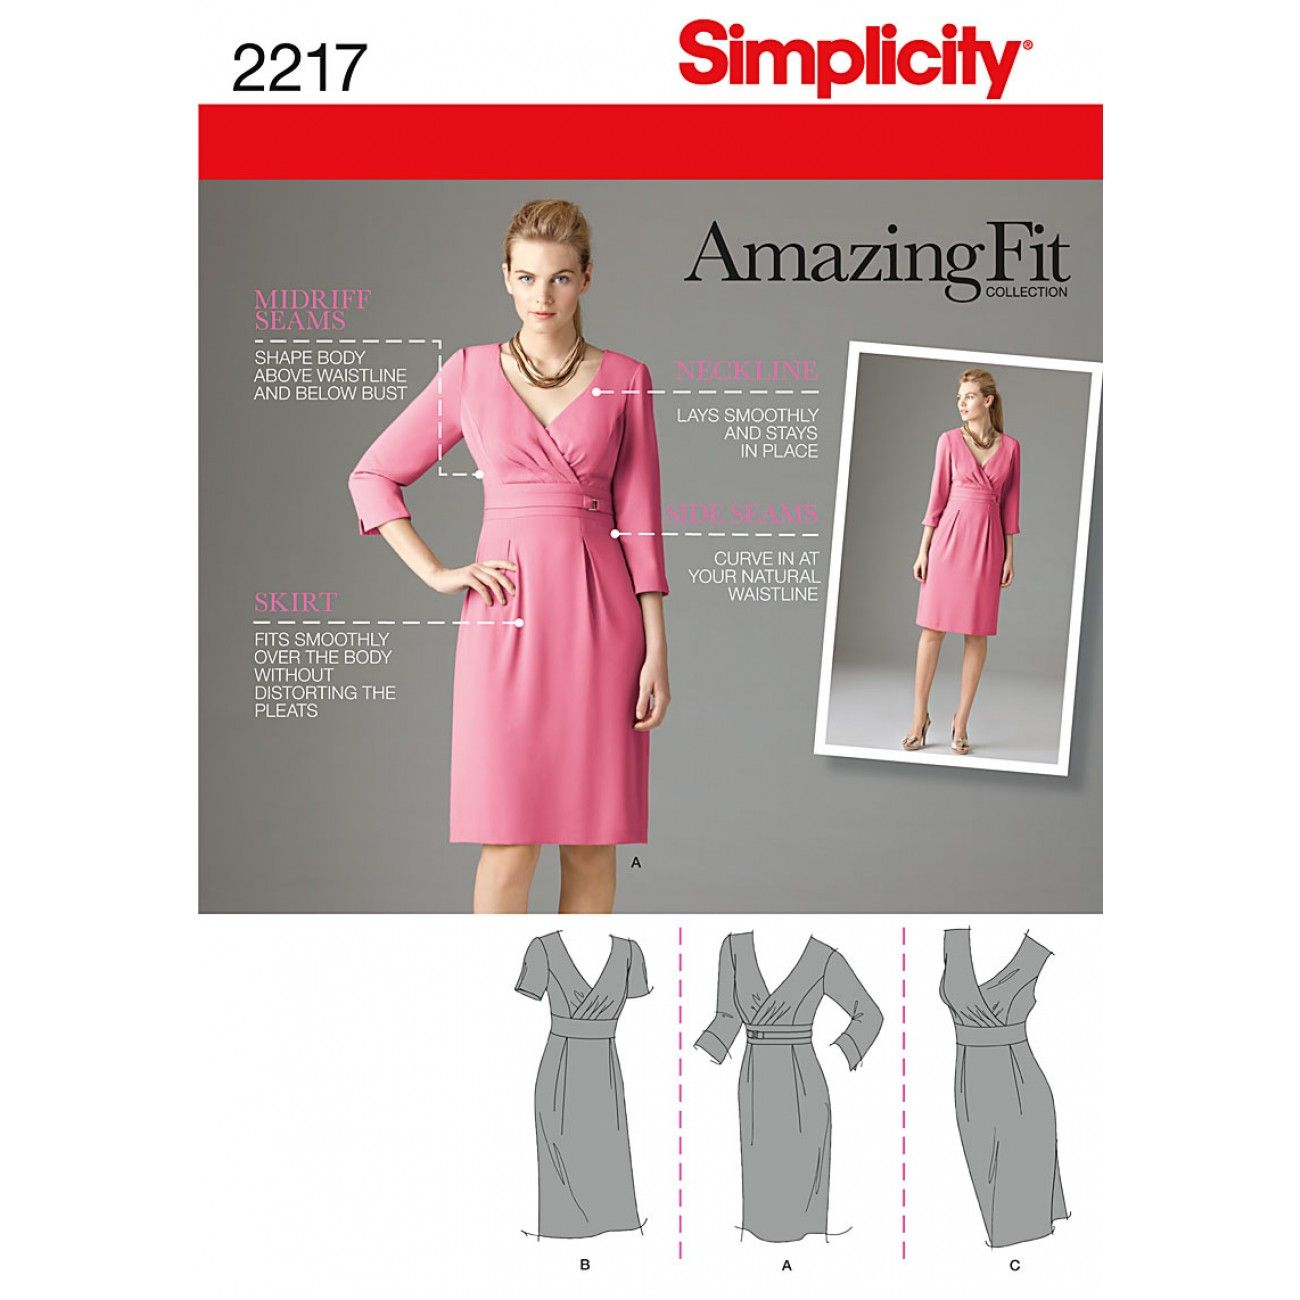 Simplicity pattern patterns fabric patterns shop online simplicity 2217 misses amazing fit dresses misses amazing fit dress with individual pattern pieces for slim average and curvy fit and a b c jeuxipadfo Gallery